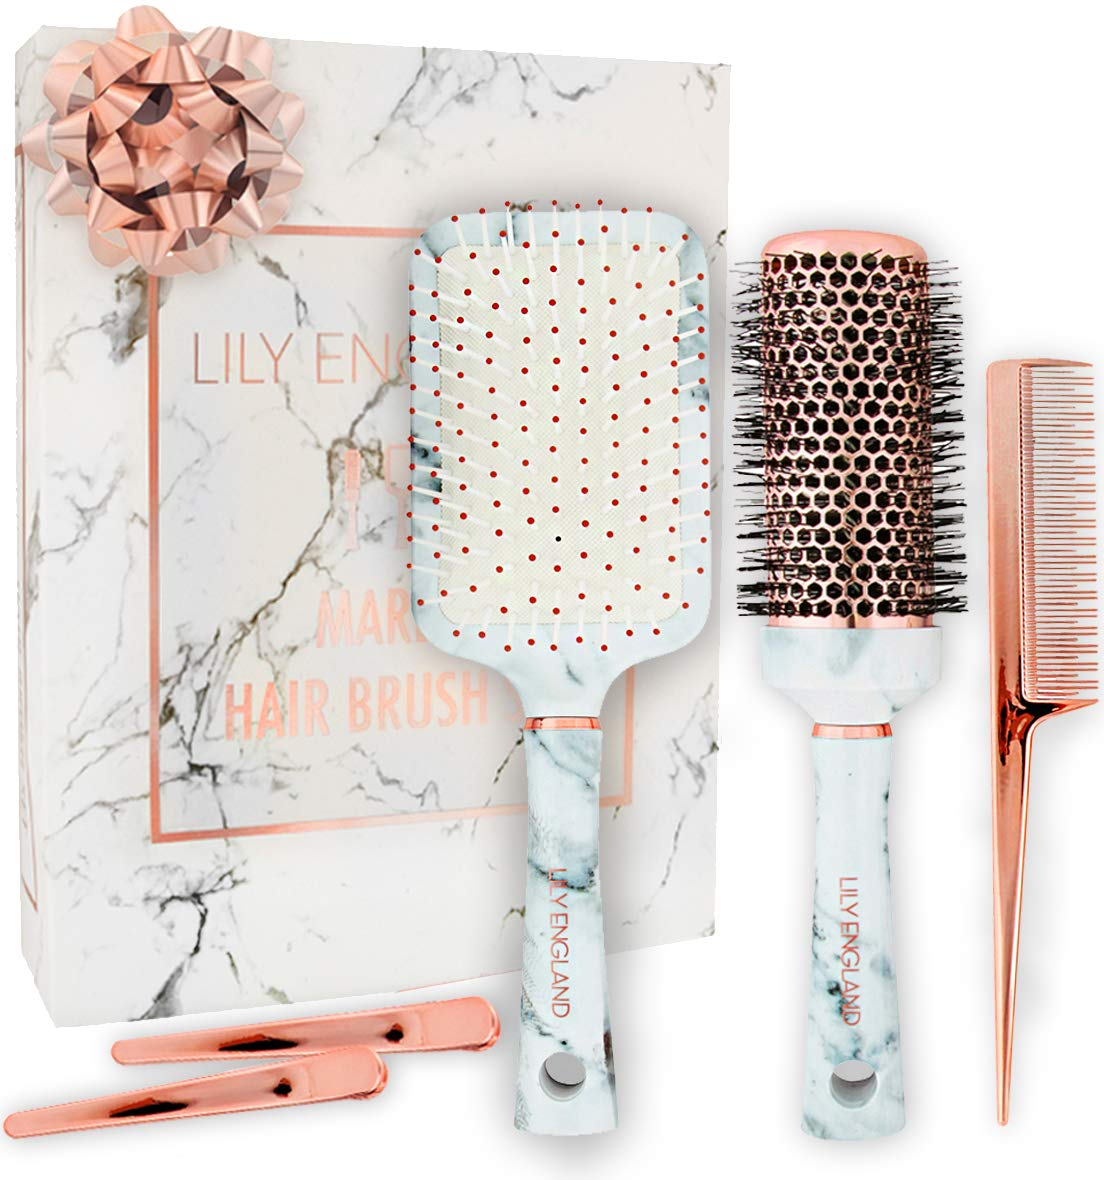 One of the unique gift ideas for women over 40 that they are going to love is the brush set that will cover all her hairstyling needs. This brush set includes a barrel brush, a paddle brush, a tail comb brush, and 2 hair clips that will help your loved one style her hair without any stress.